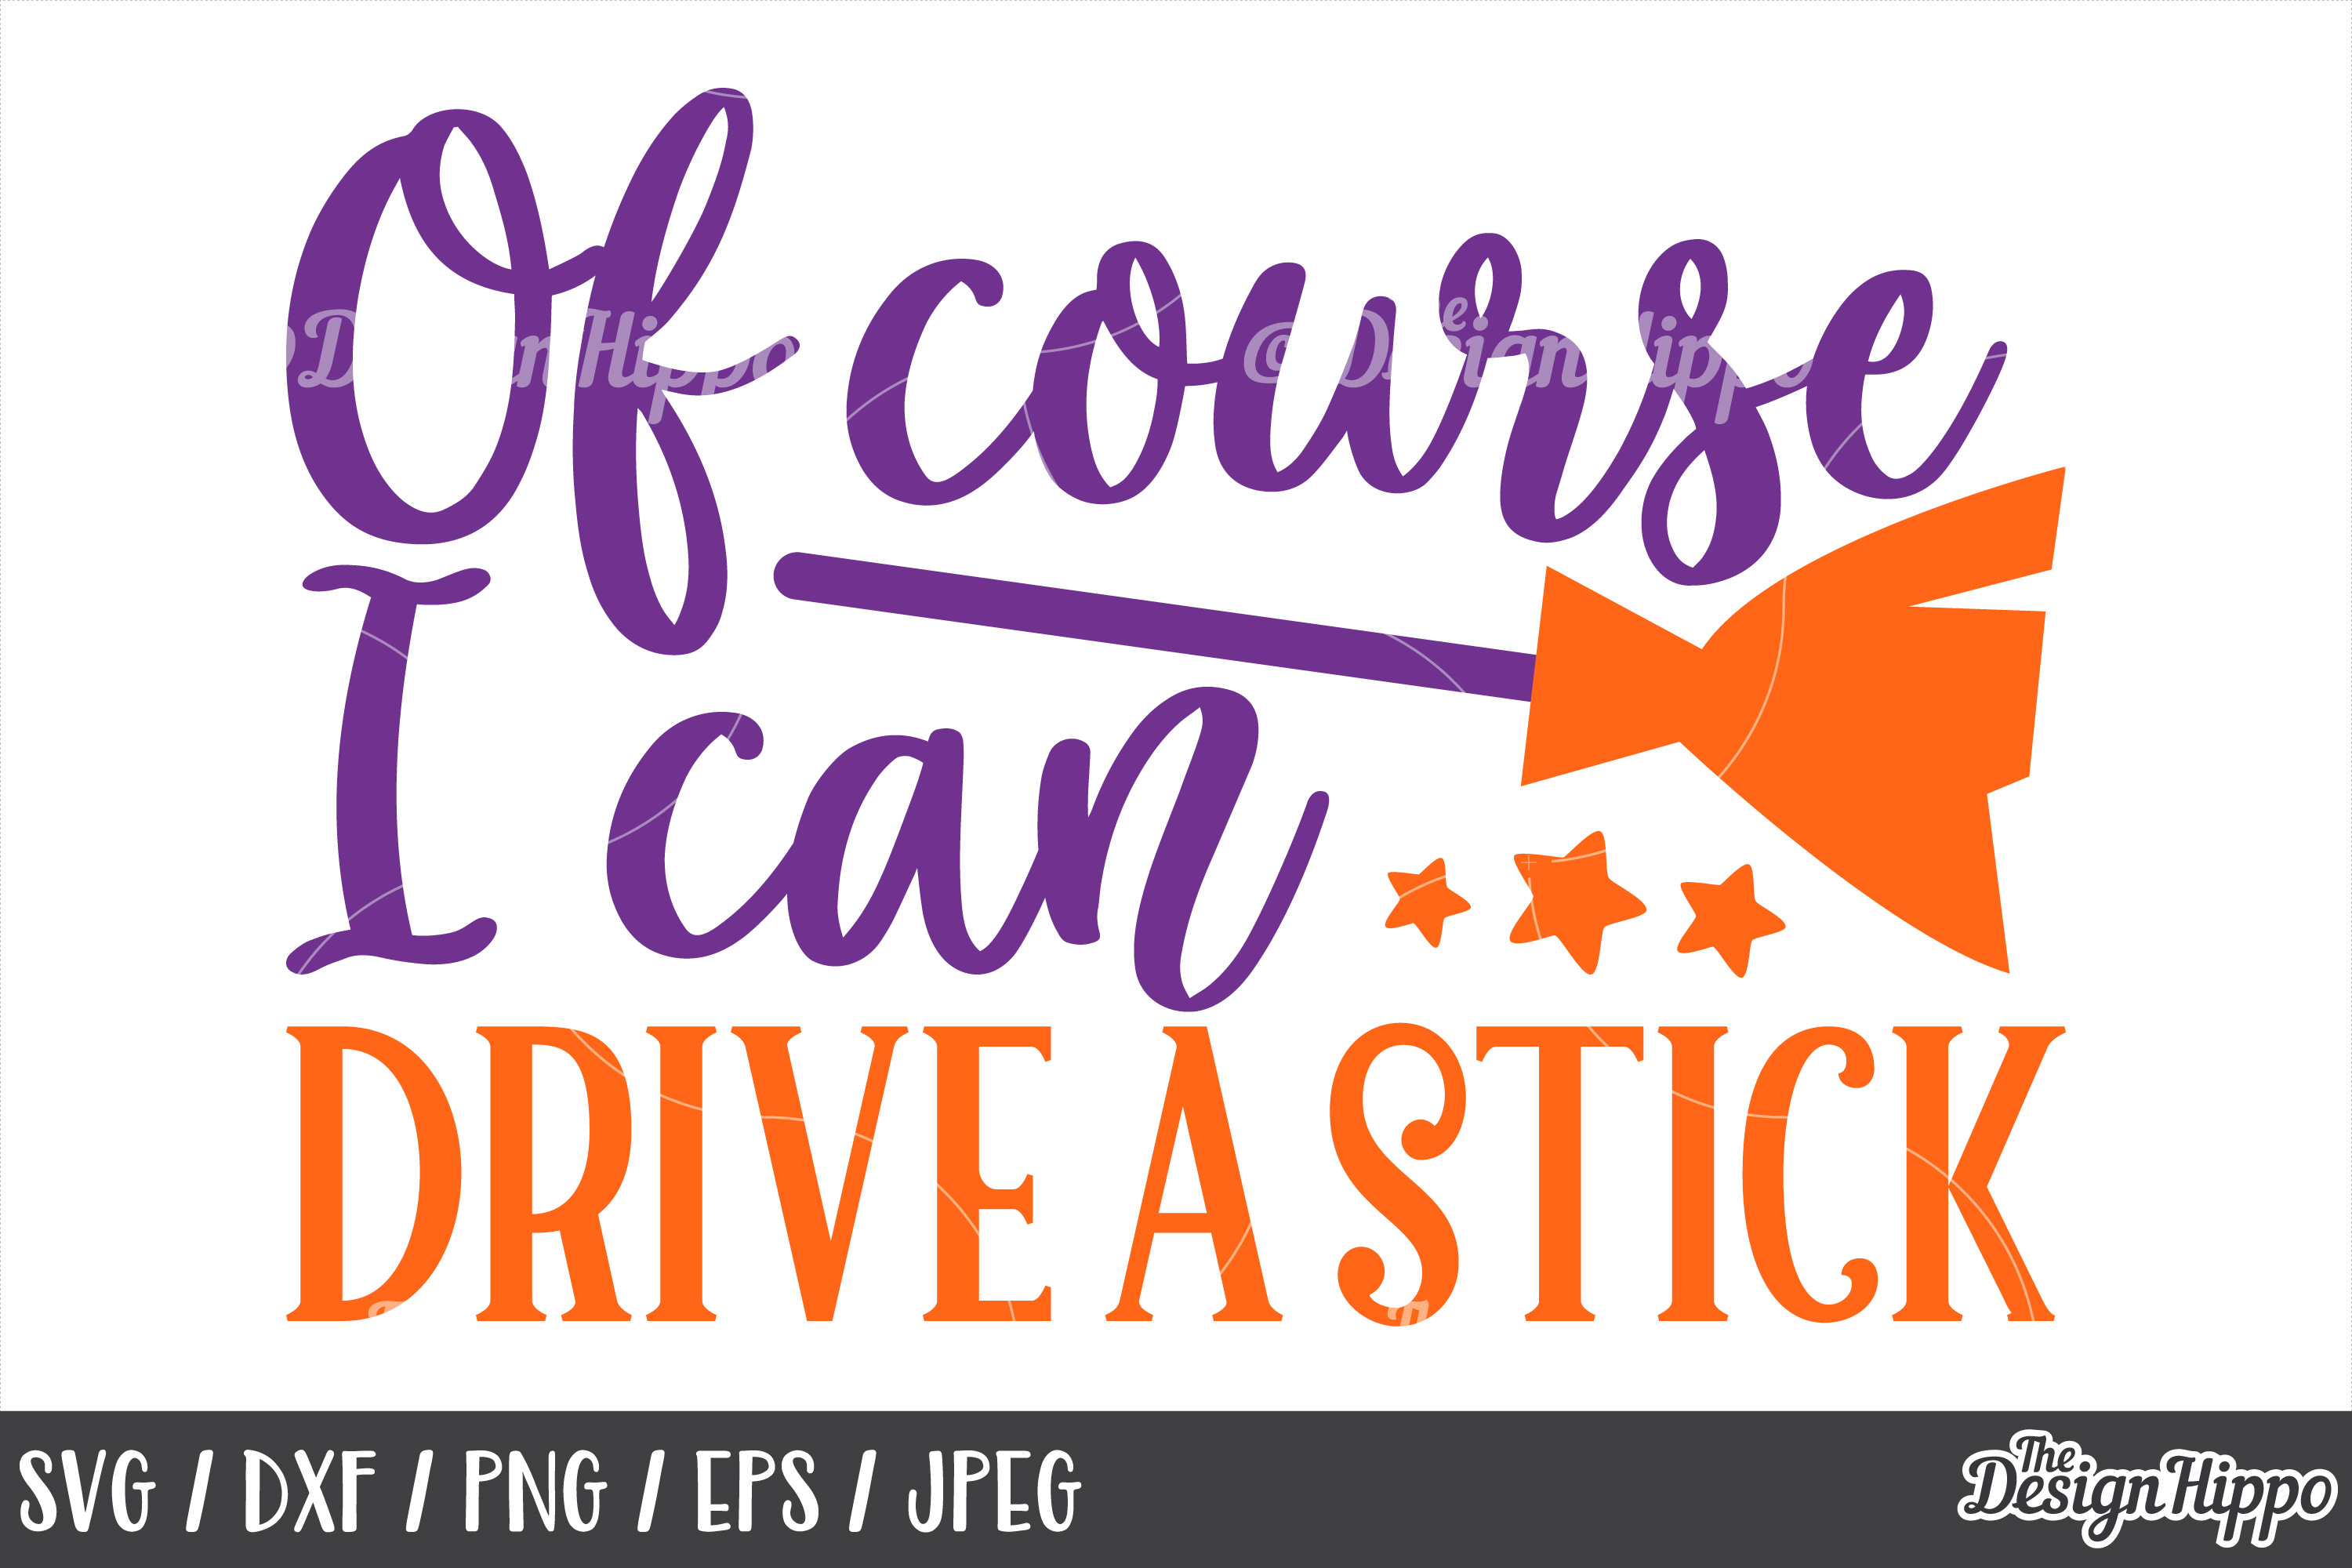 I can drive a stick, SVG, Halloween, Sayings, Witch SVG, PNG example image 1